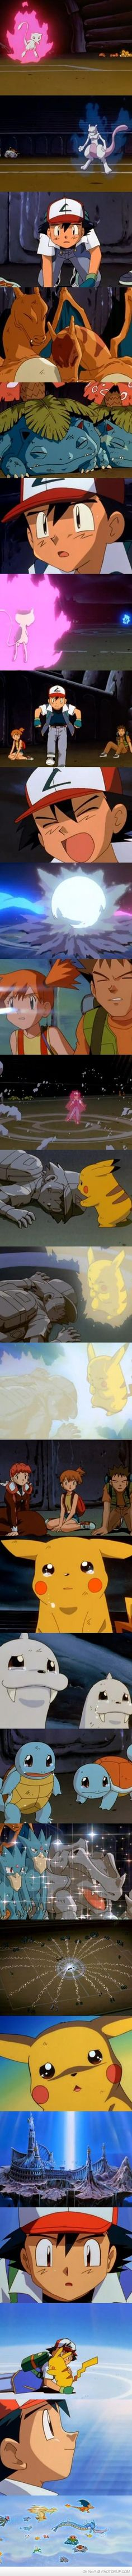 The Saddest Moment Of My Childhood